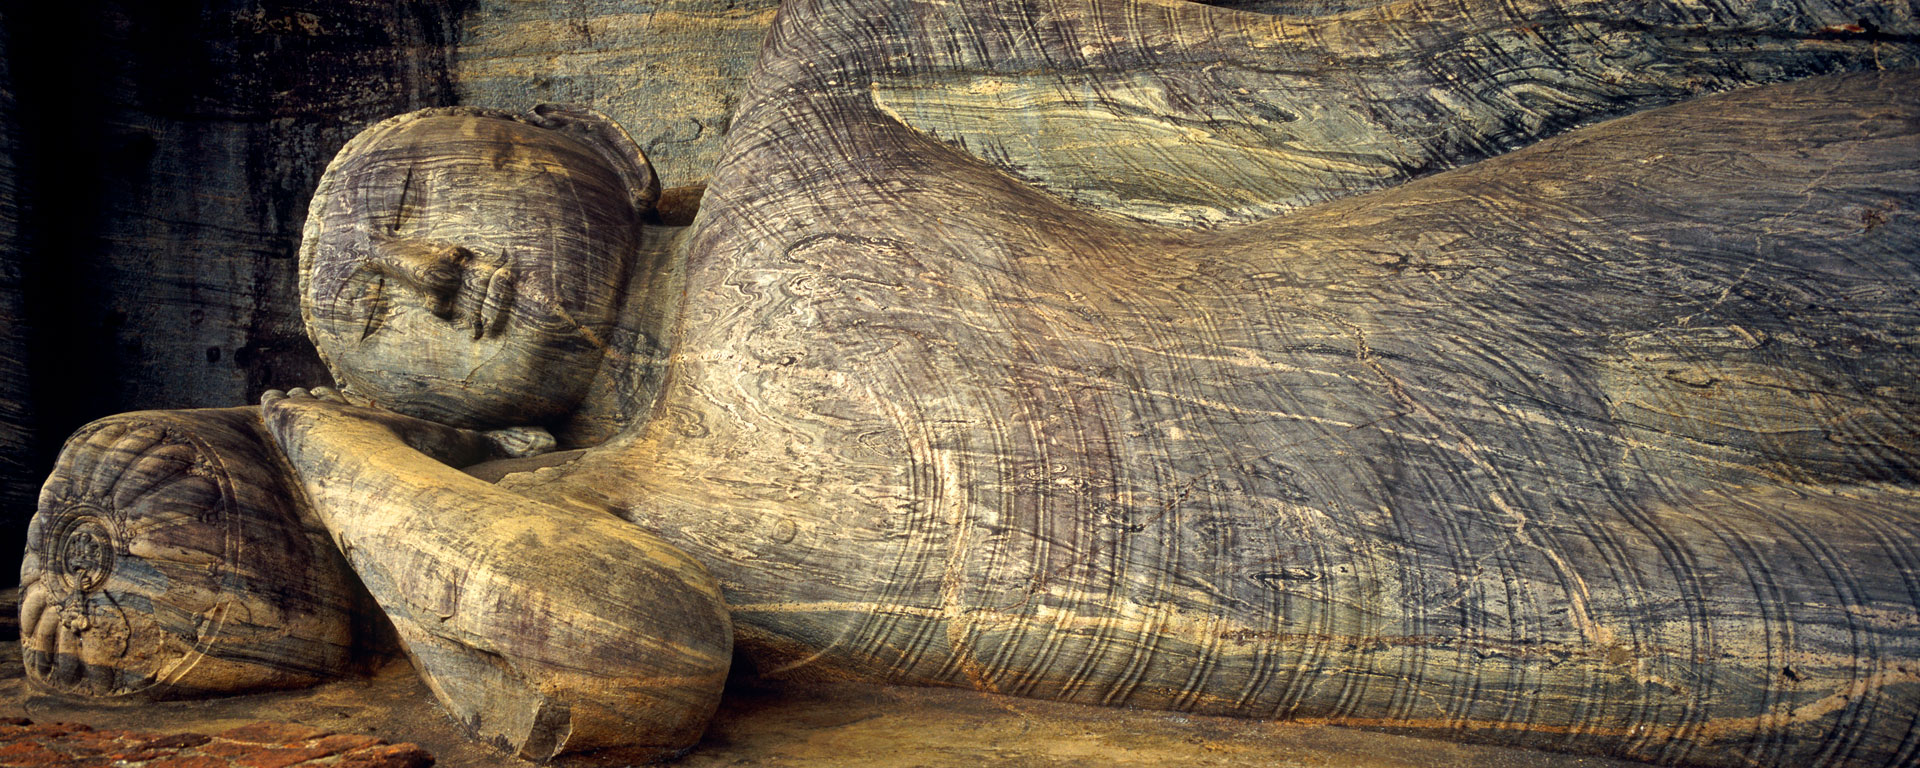 Recumbent Buddha in the Cave of the Spirits of Knowledge, Polonnaruwa, Sri Lanka